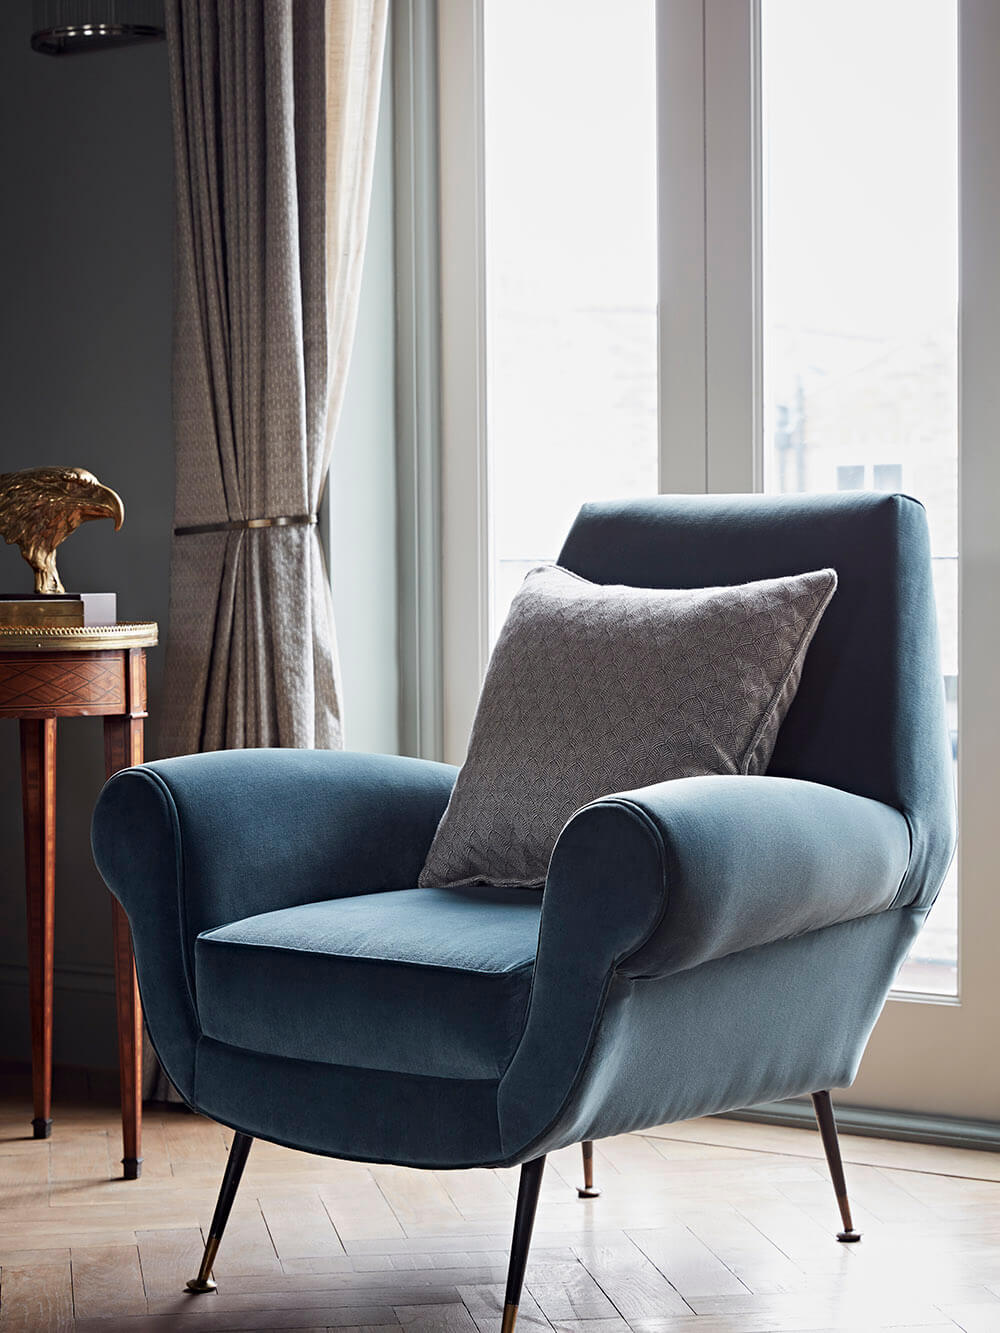 Kensington - W10 - Living Room - Arm chair